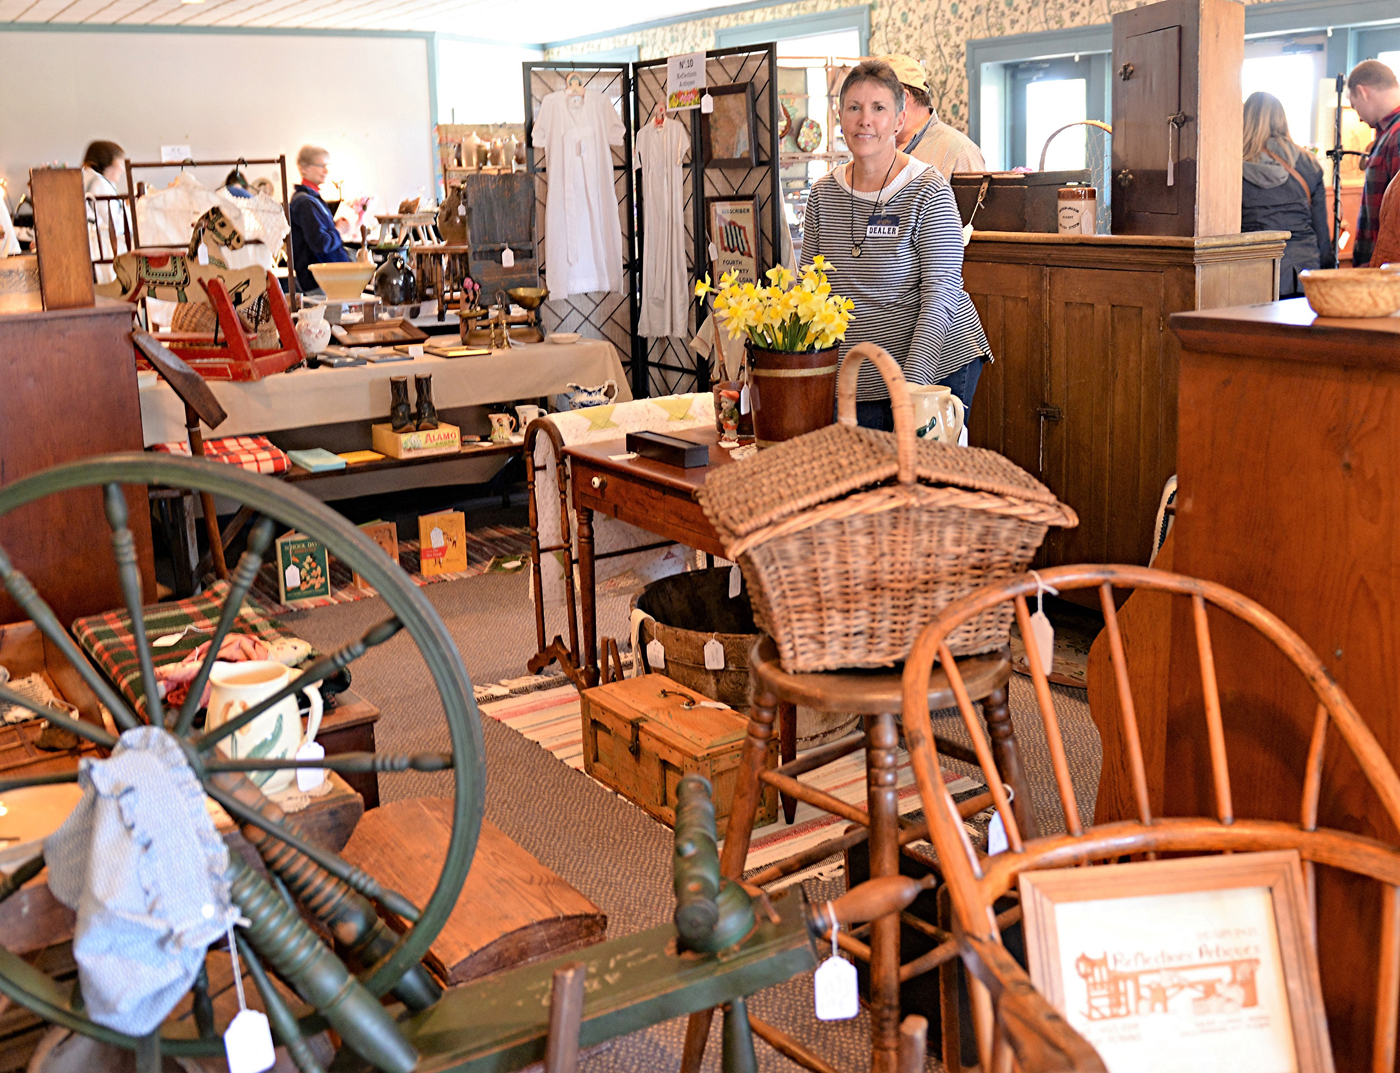 A wide selection of fine antiques is available at Genesee Country Village & Museum's Antique Show & Sale on April 22.  Provided photo